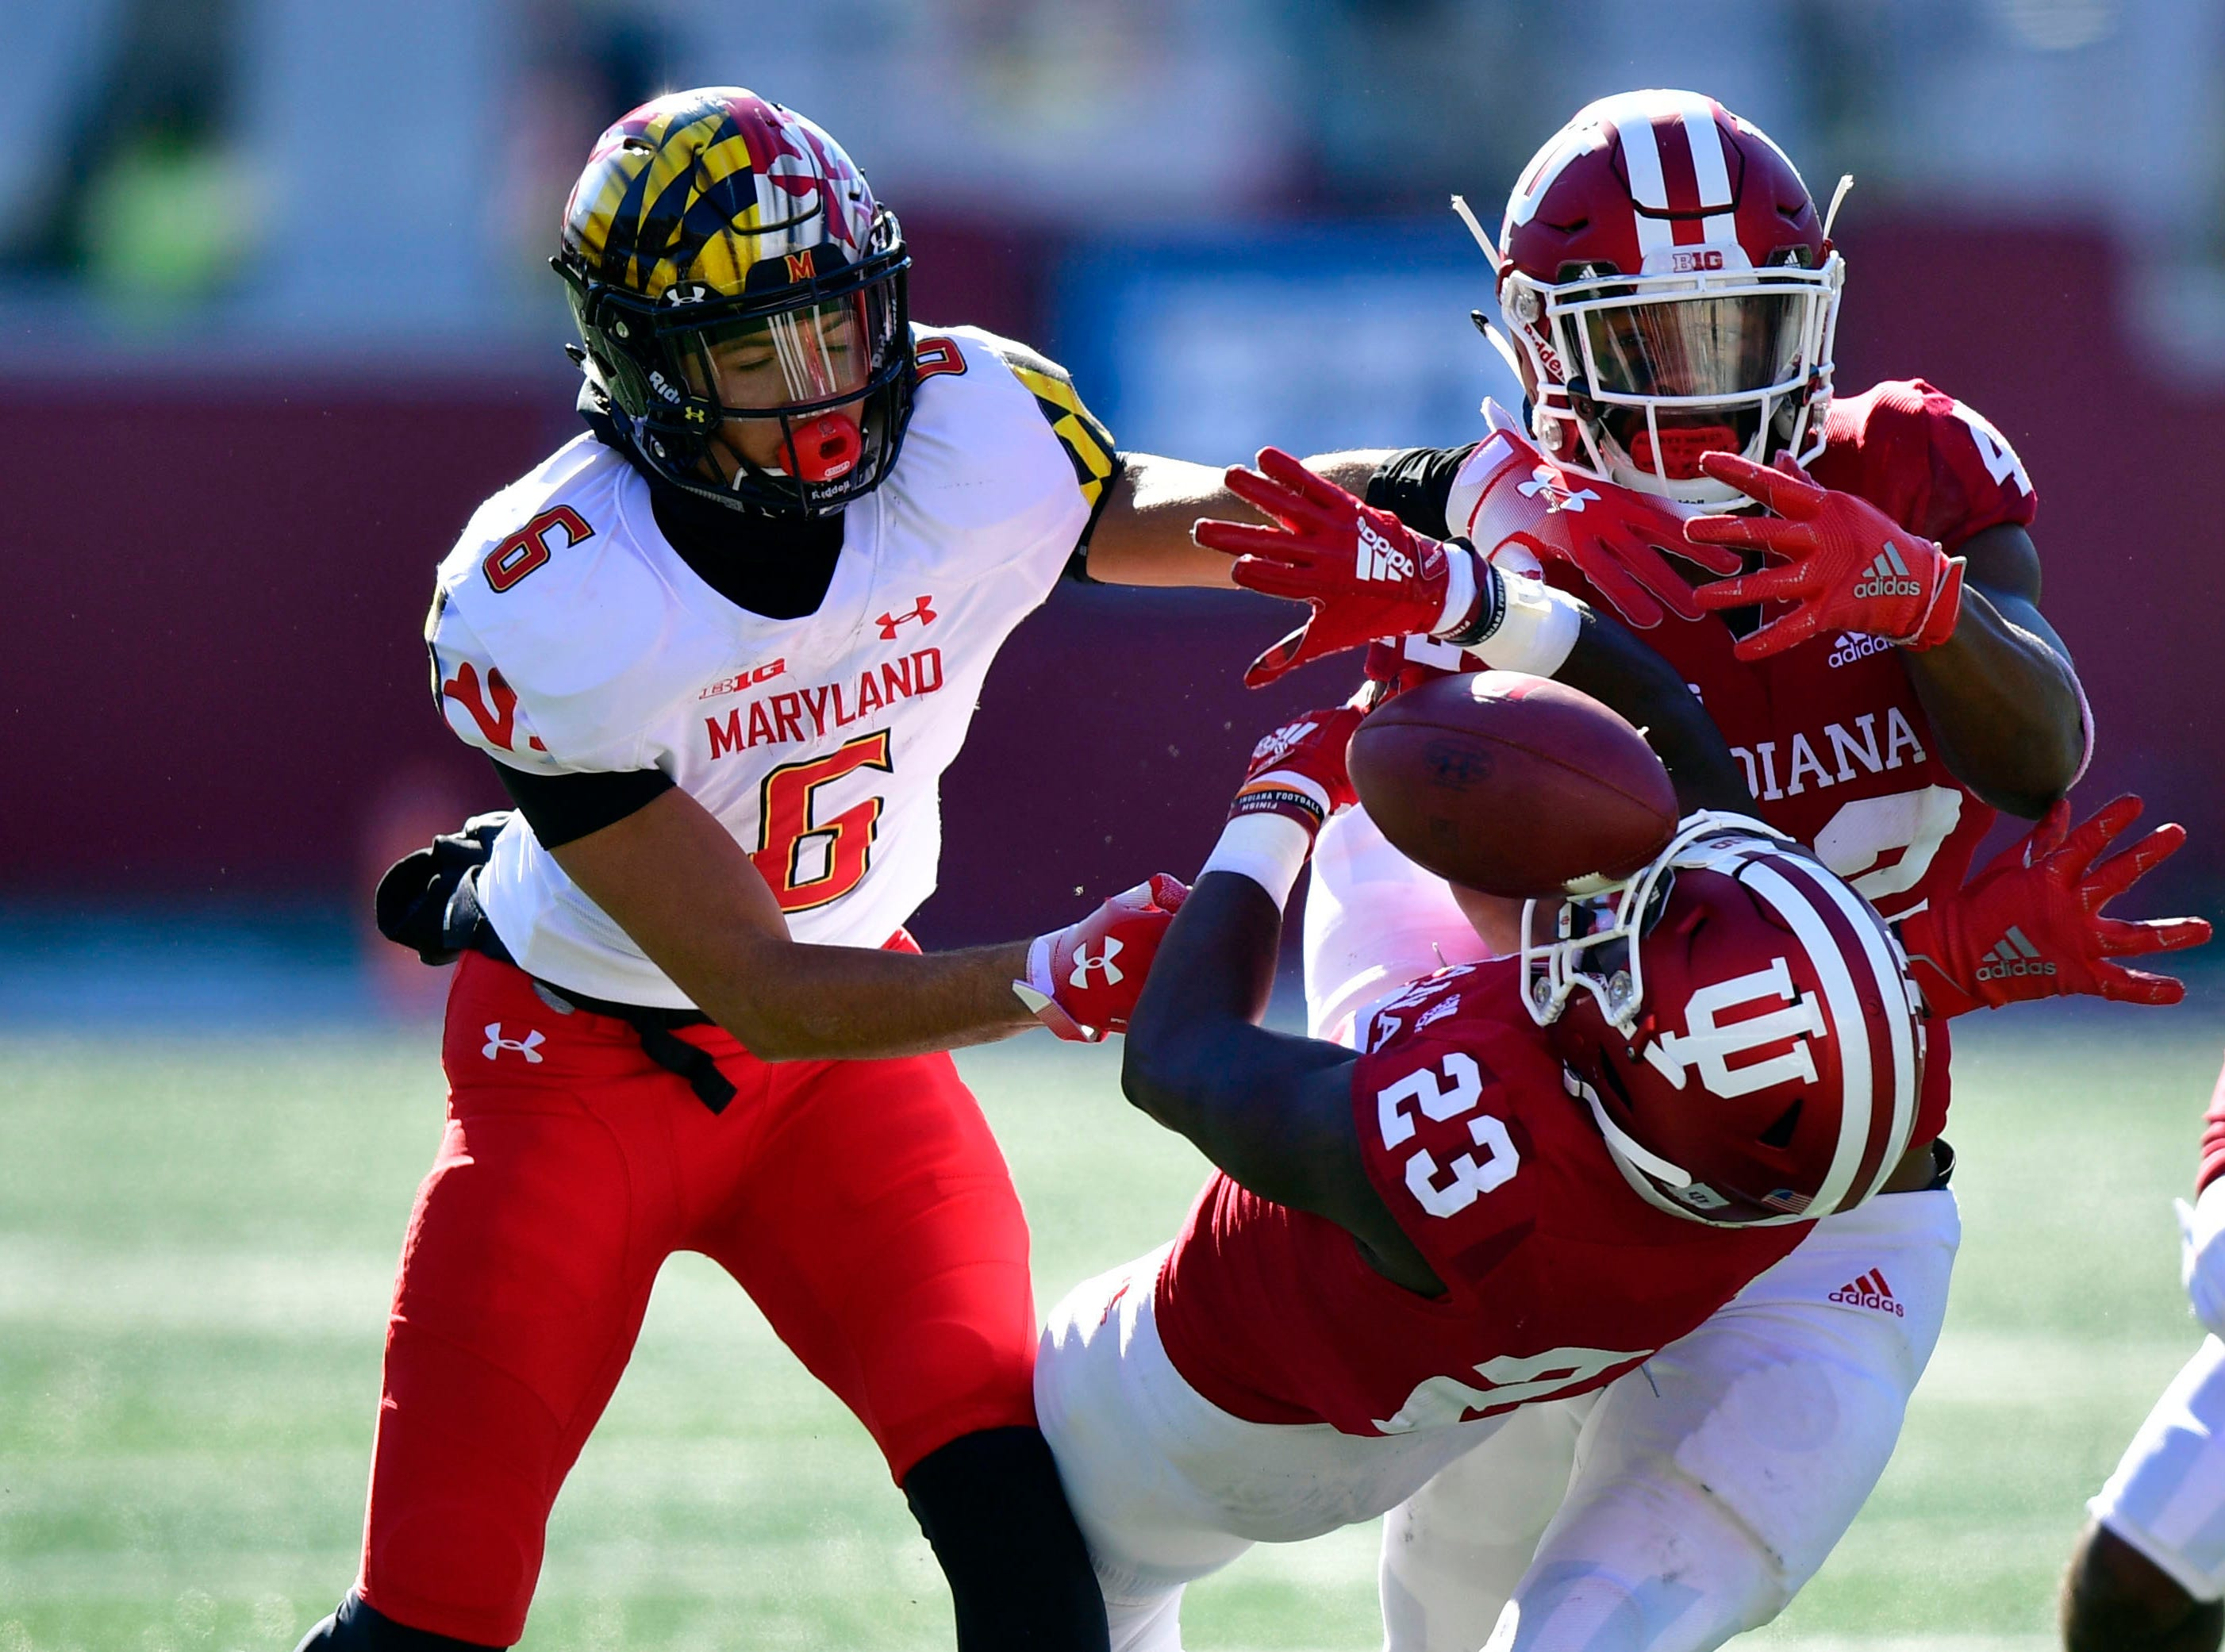 Indiana Hoosiers defensive backs Jaylin Williams (23) and Marcelino Ball (42) attempt to intercept a ball intended for Maryland Terrapins WR Jeshaun Jones during the fist half of the the game at Memorial Stadium.